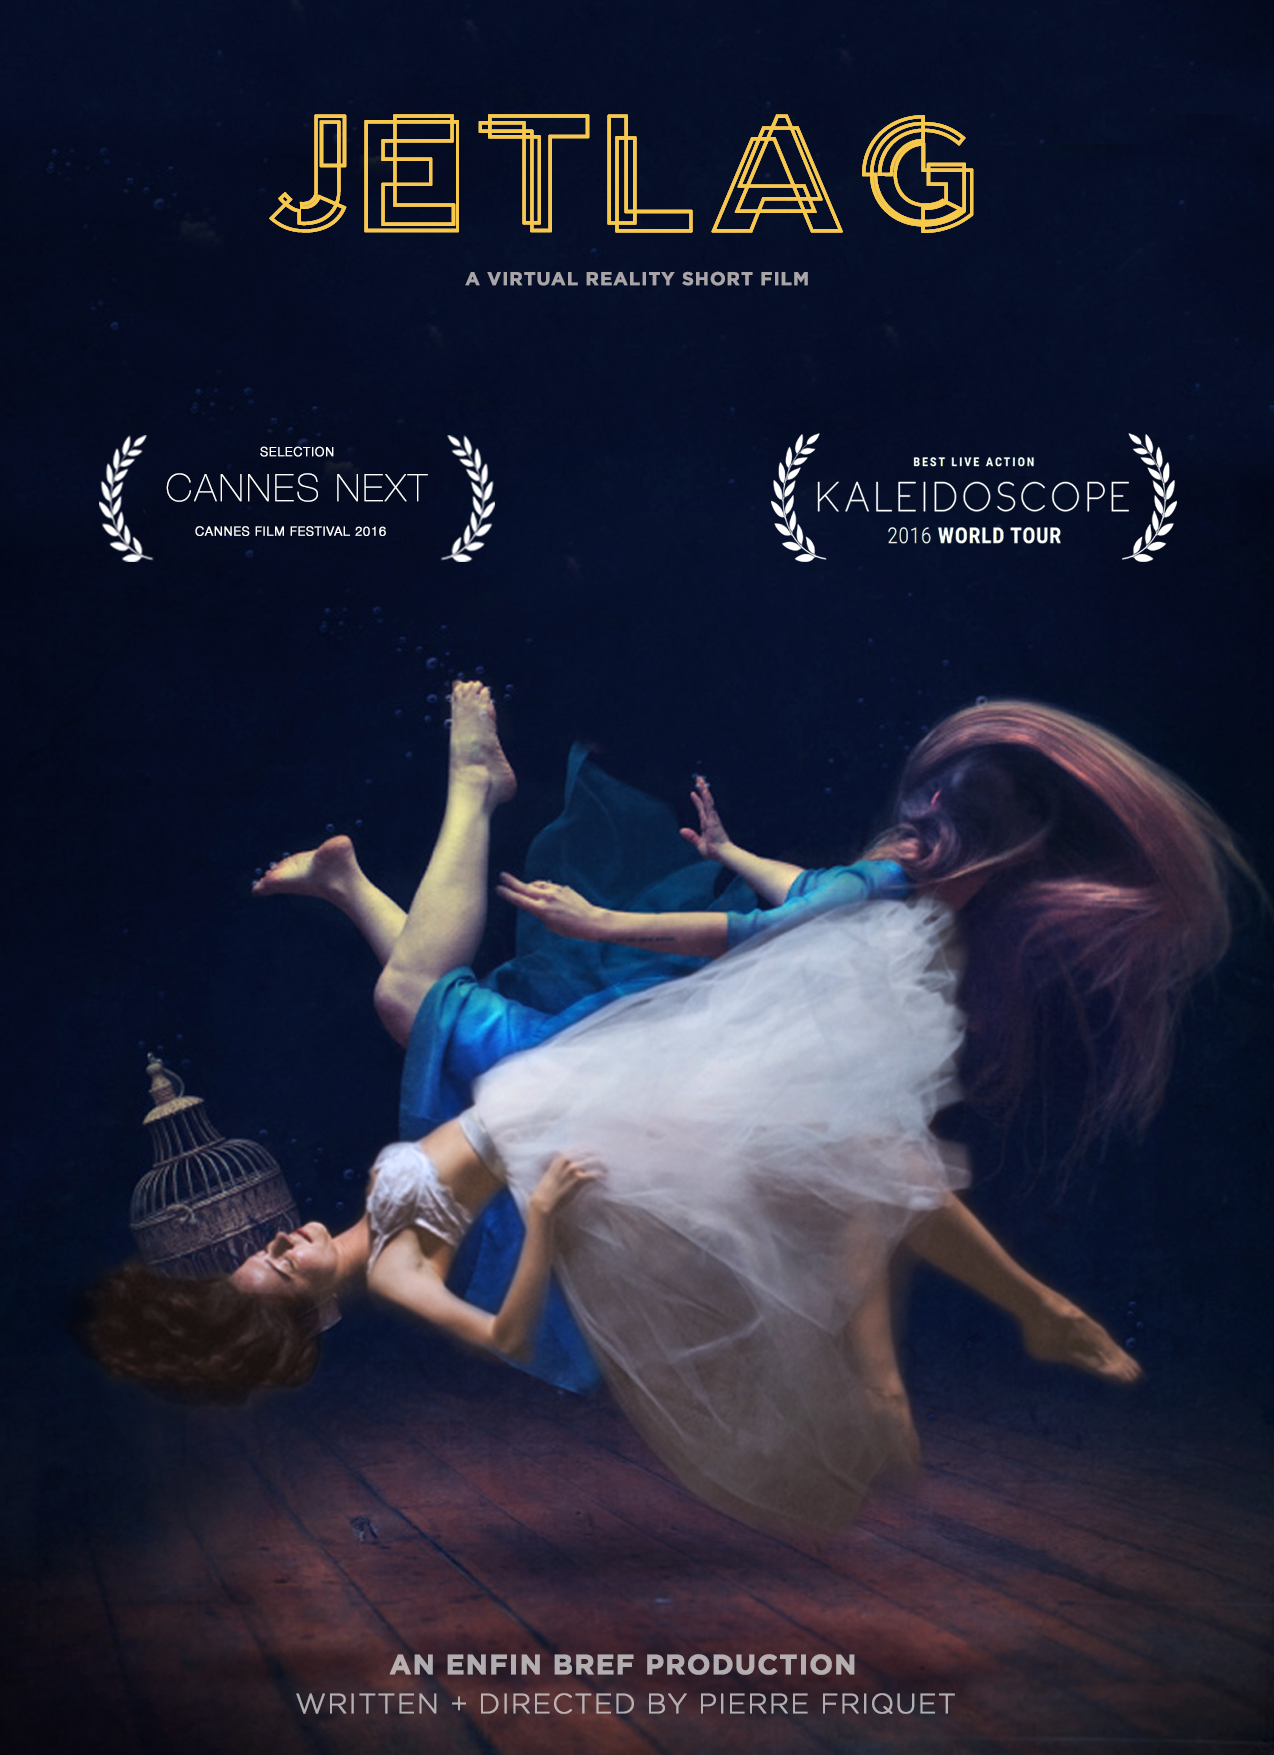 Cannes Film Festival Official Entry, 2016. -  Due to her expiring visa, Ju, a 30-year old Brazilian woman, leaves India. Hence She leaves behind her lover, Tanushree, a young Indian woman.Separated by continents they start exchanging audio messages. To express their love in absence of each other, Ju performs an Indian classical dance and Tanushree, a capoeira dance. In these physical forms they find a temporary union.When Tanushree's rational side arises, she questions the relationship, sending Ju diving into a poetic world.. I am the co-creator, Technical Director & Director of Photography of this film. We shot in the summer of 2015 in Mumbai, India.It is premiering on the Kaleidoscope VR Film Festival World Tour 2016 & Cannes Film Festival 2016.